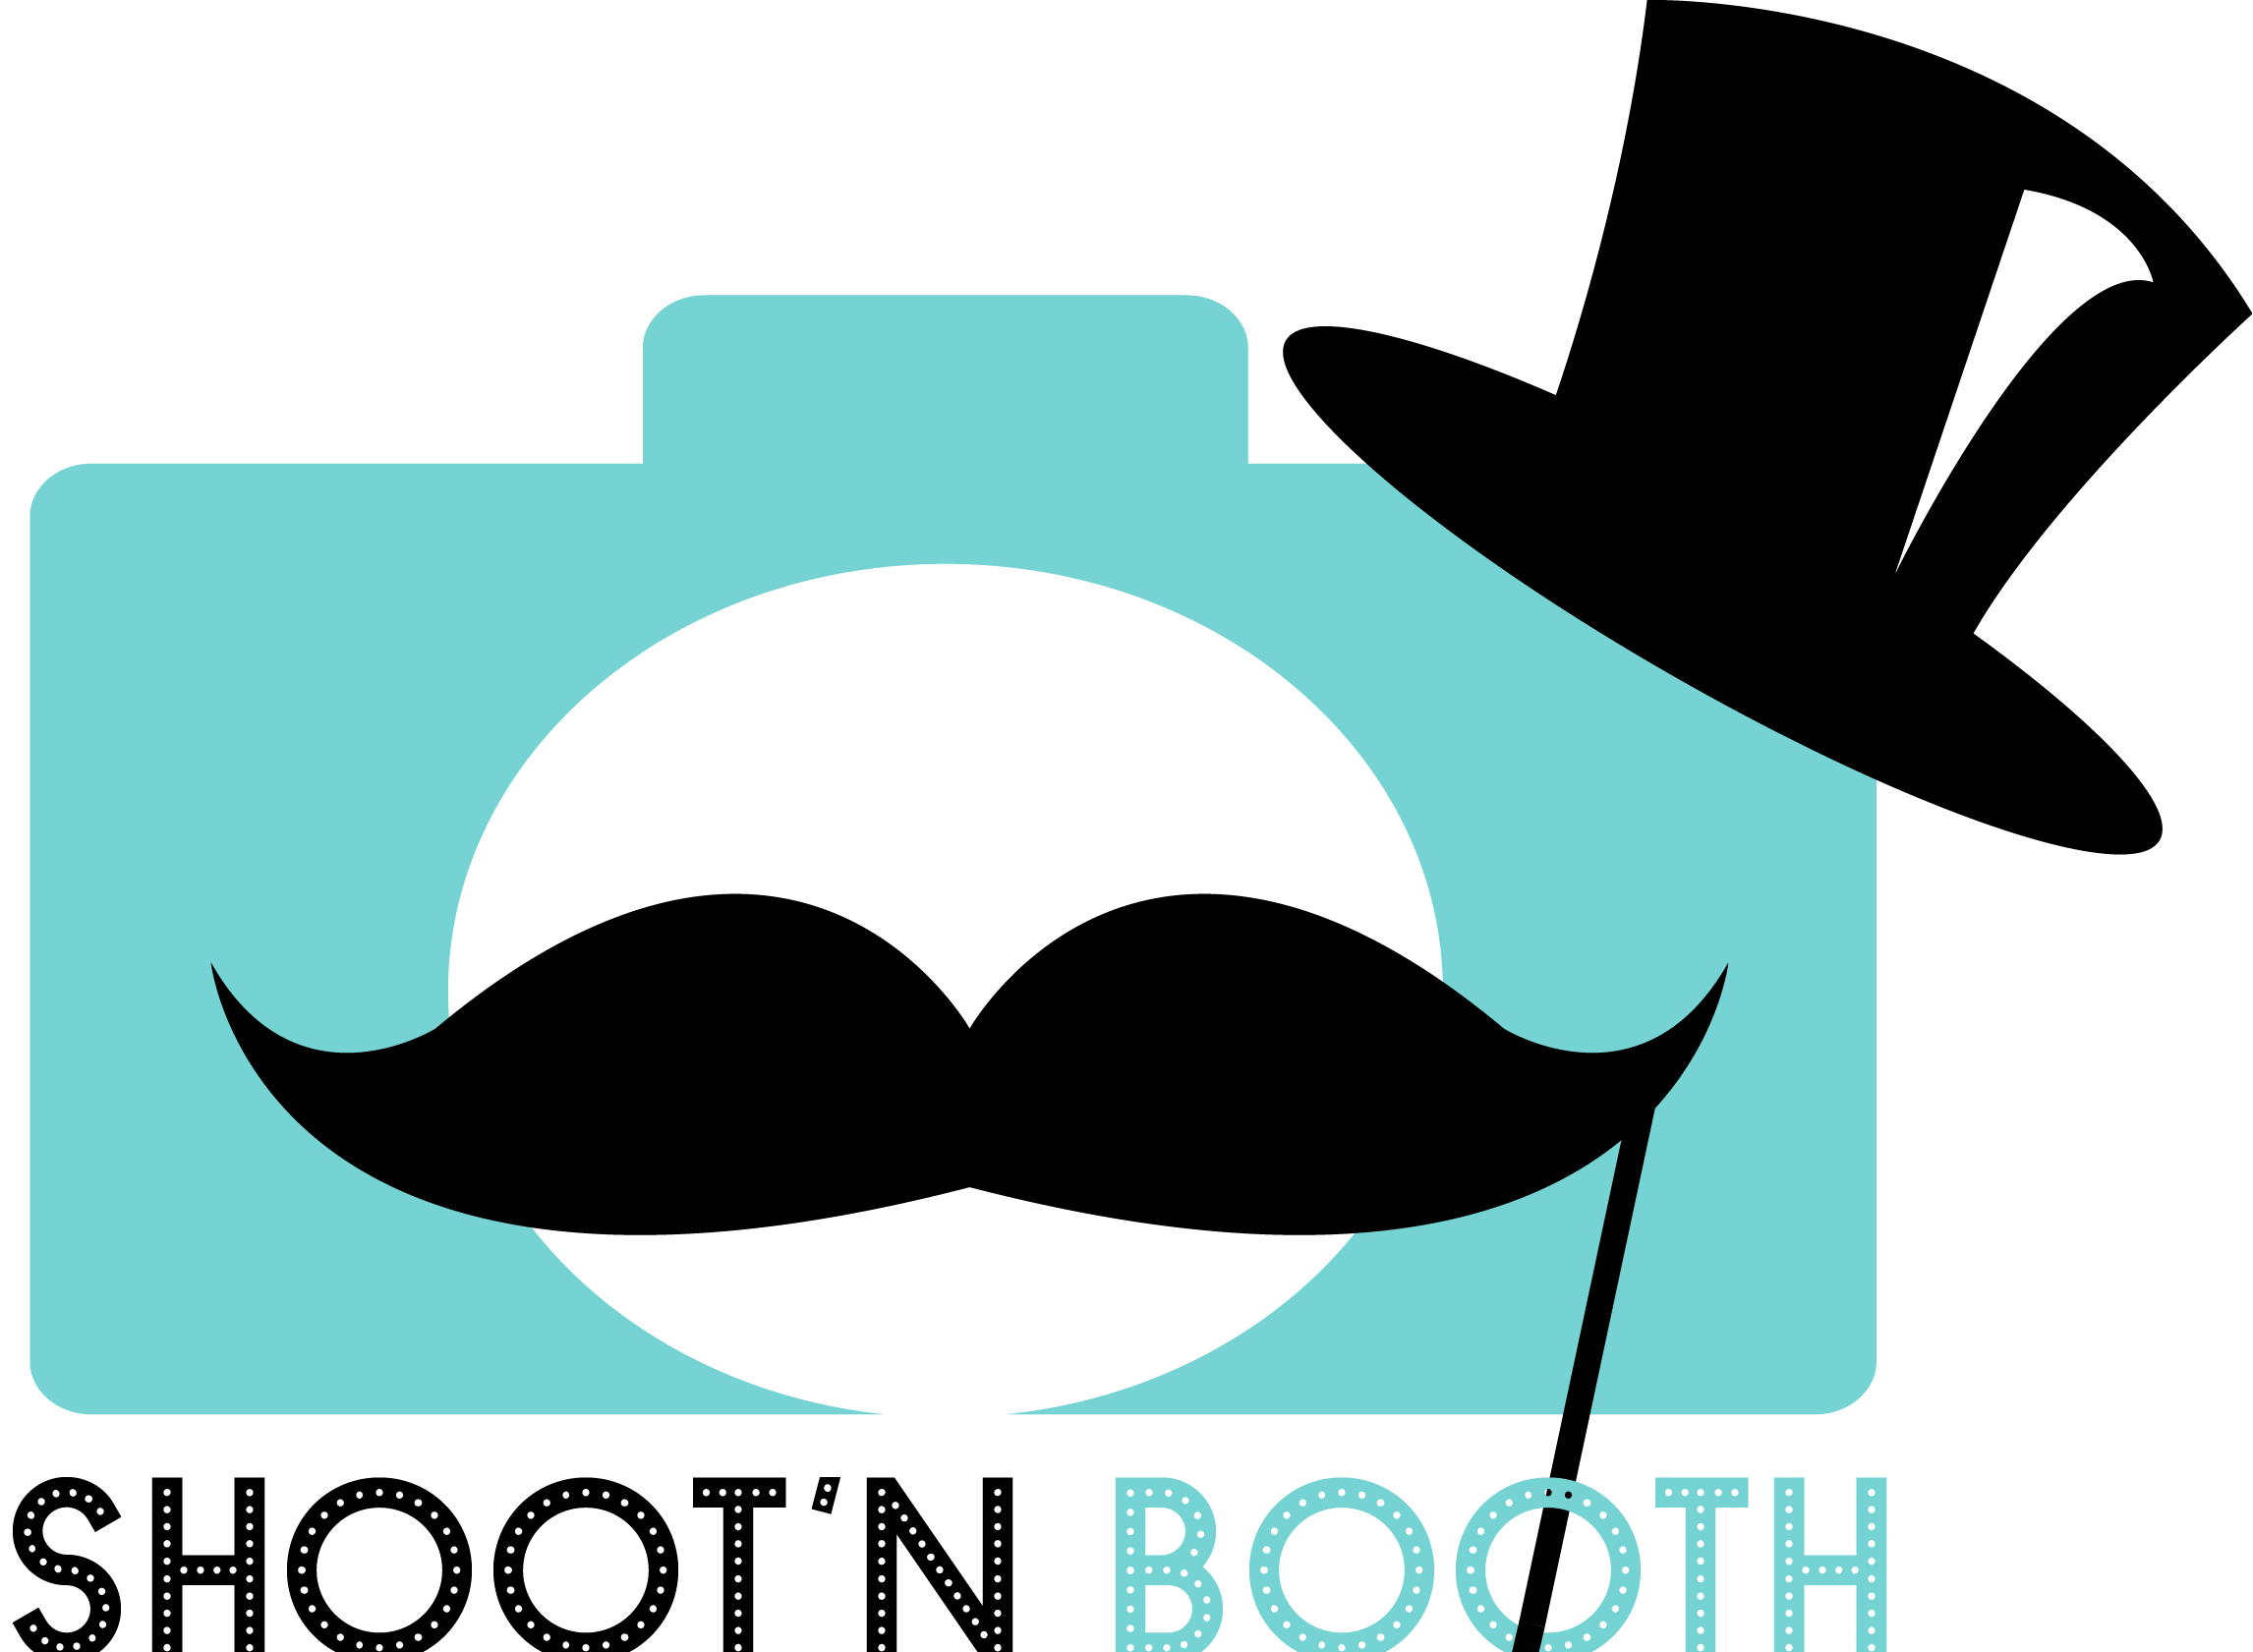 Shootn Booth